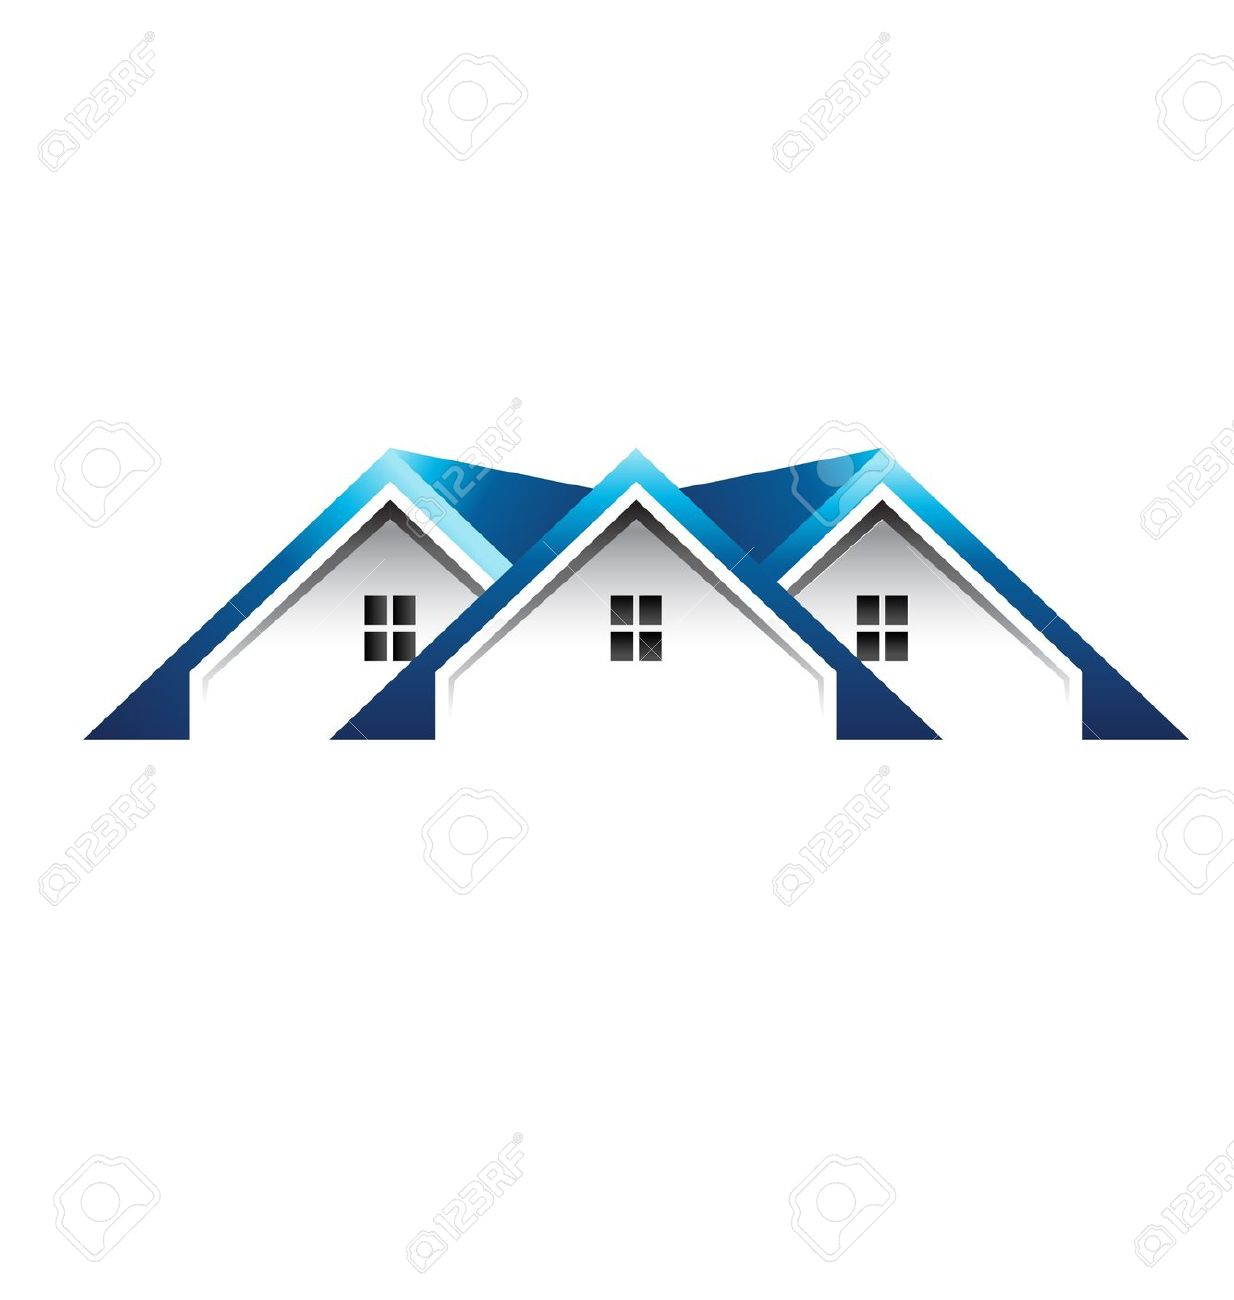 Hosue clipart roof Outline Roof House Clipart House